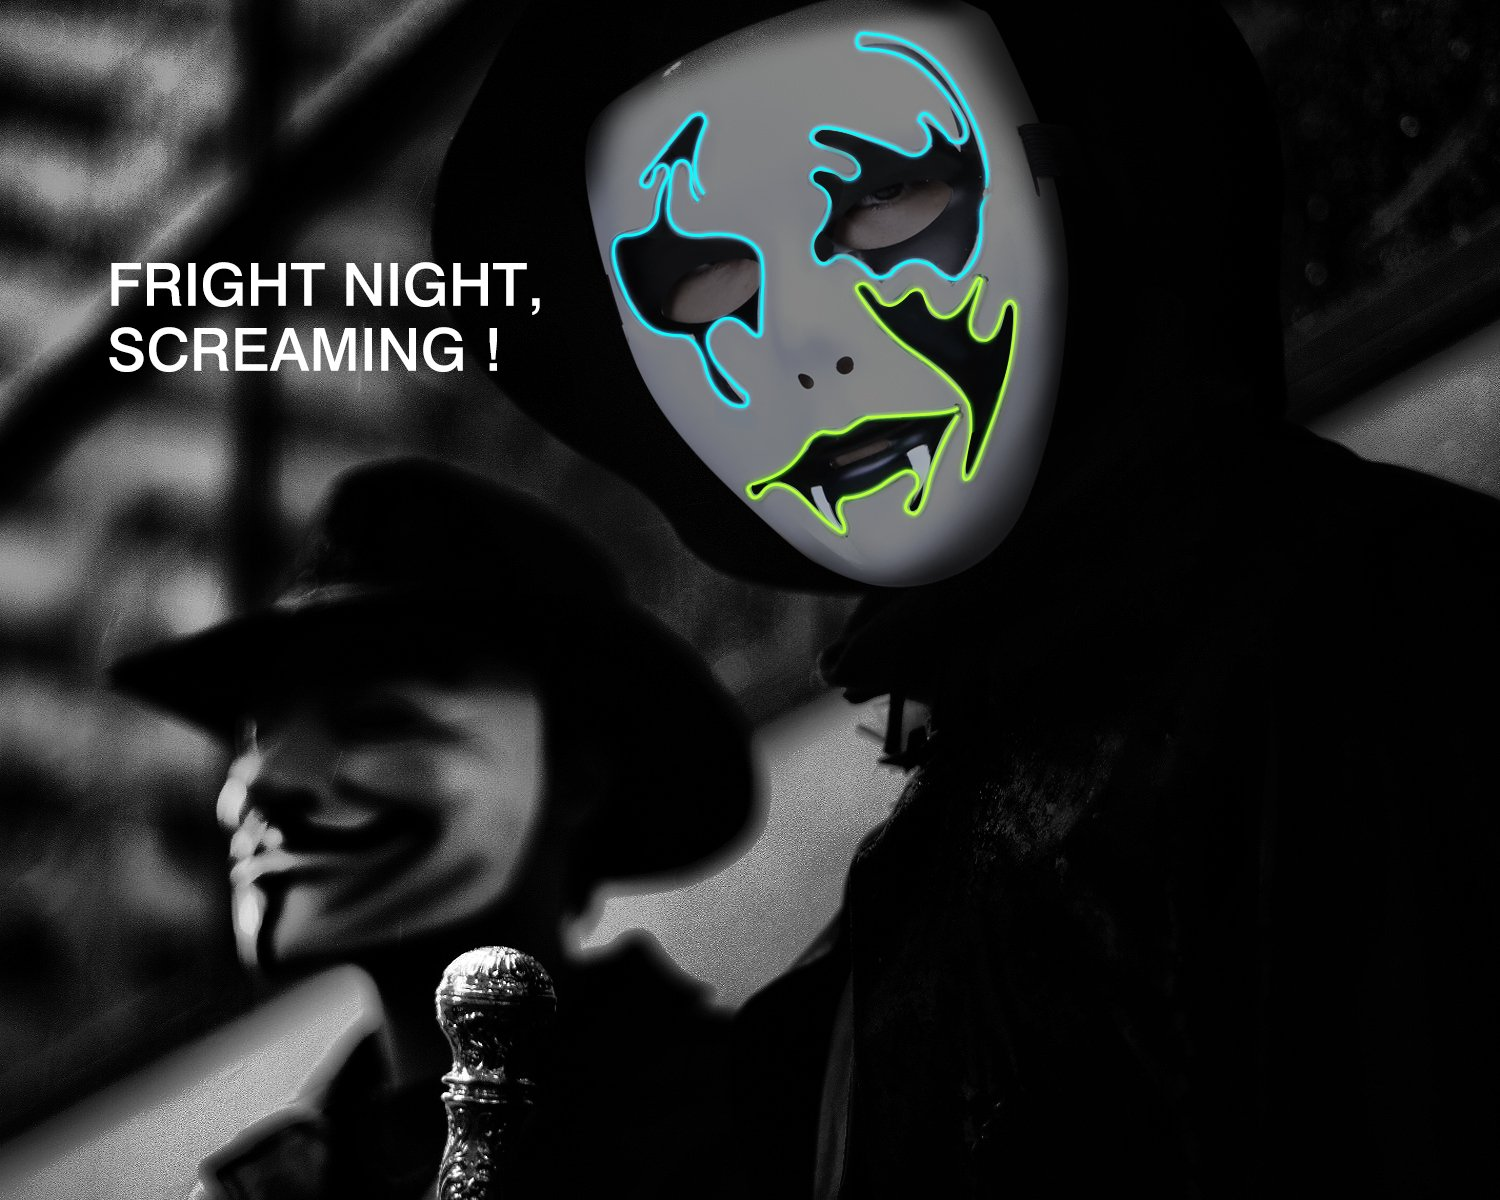 Zooawa LED Mask Halloween Decorative Hacker Masks Cosplay Costume Vendetta Guy Fawkes Light up for Party Festival Favor